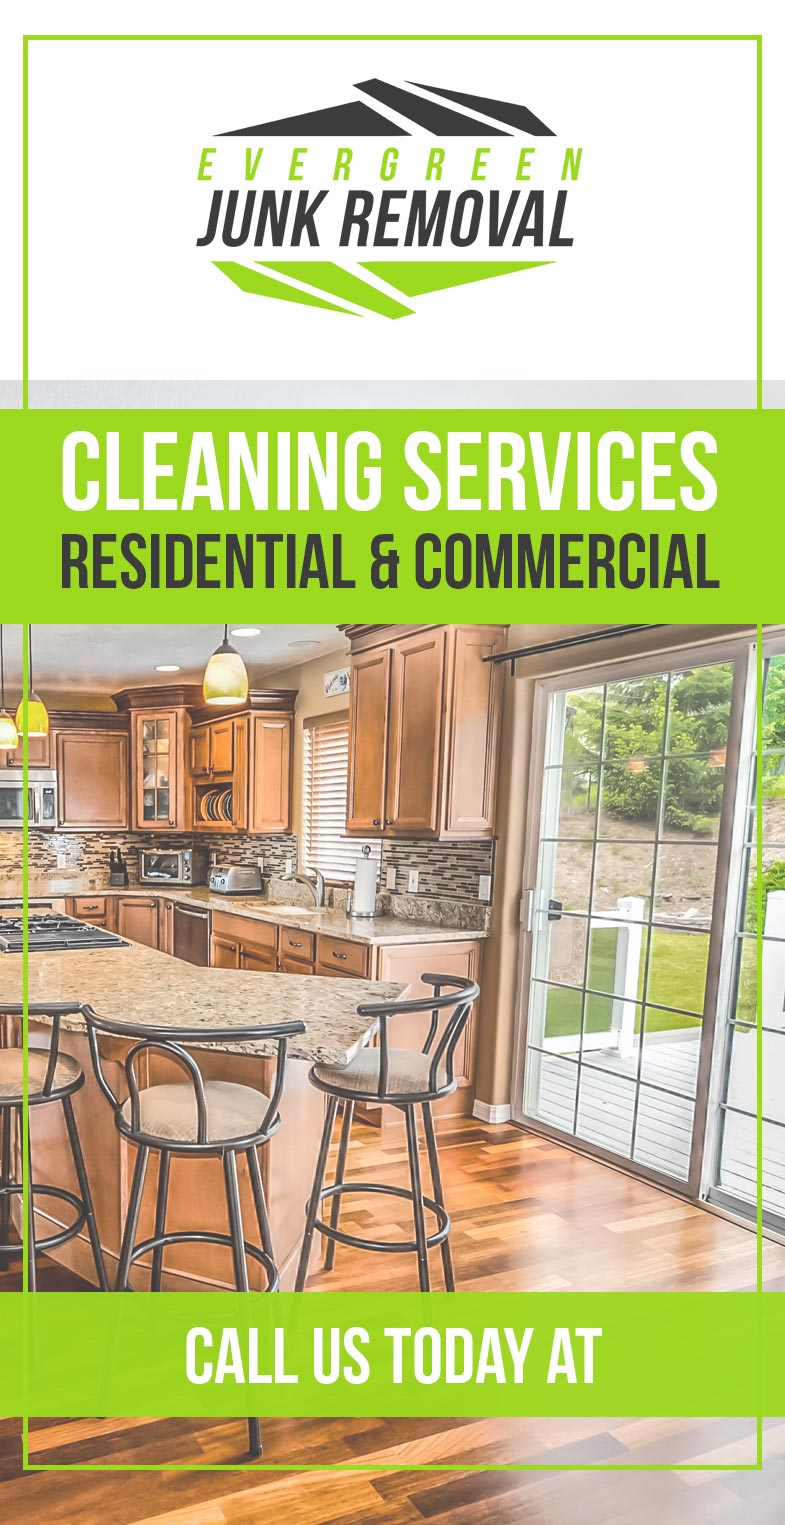 South Bay Maid Services